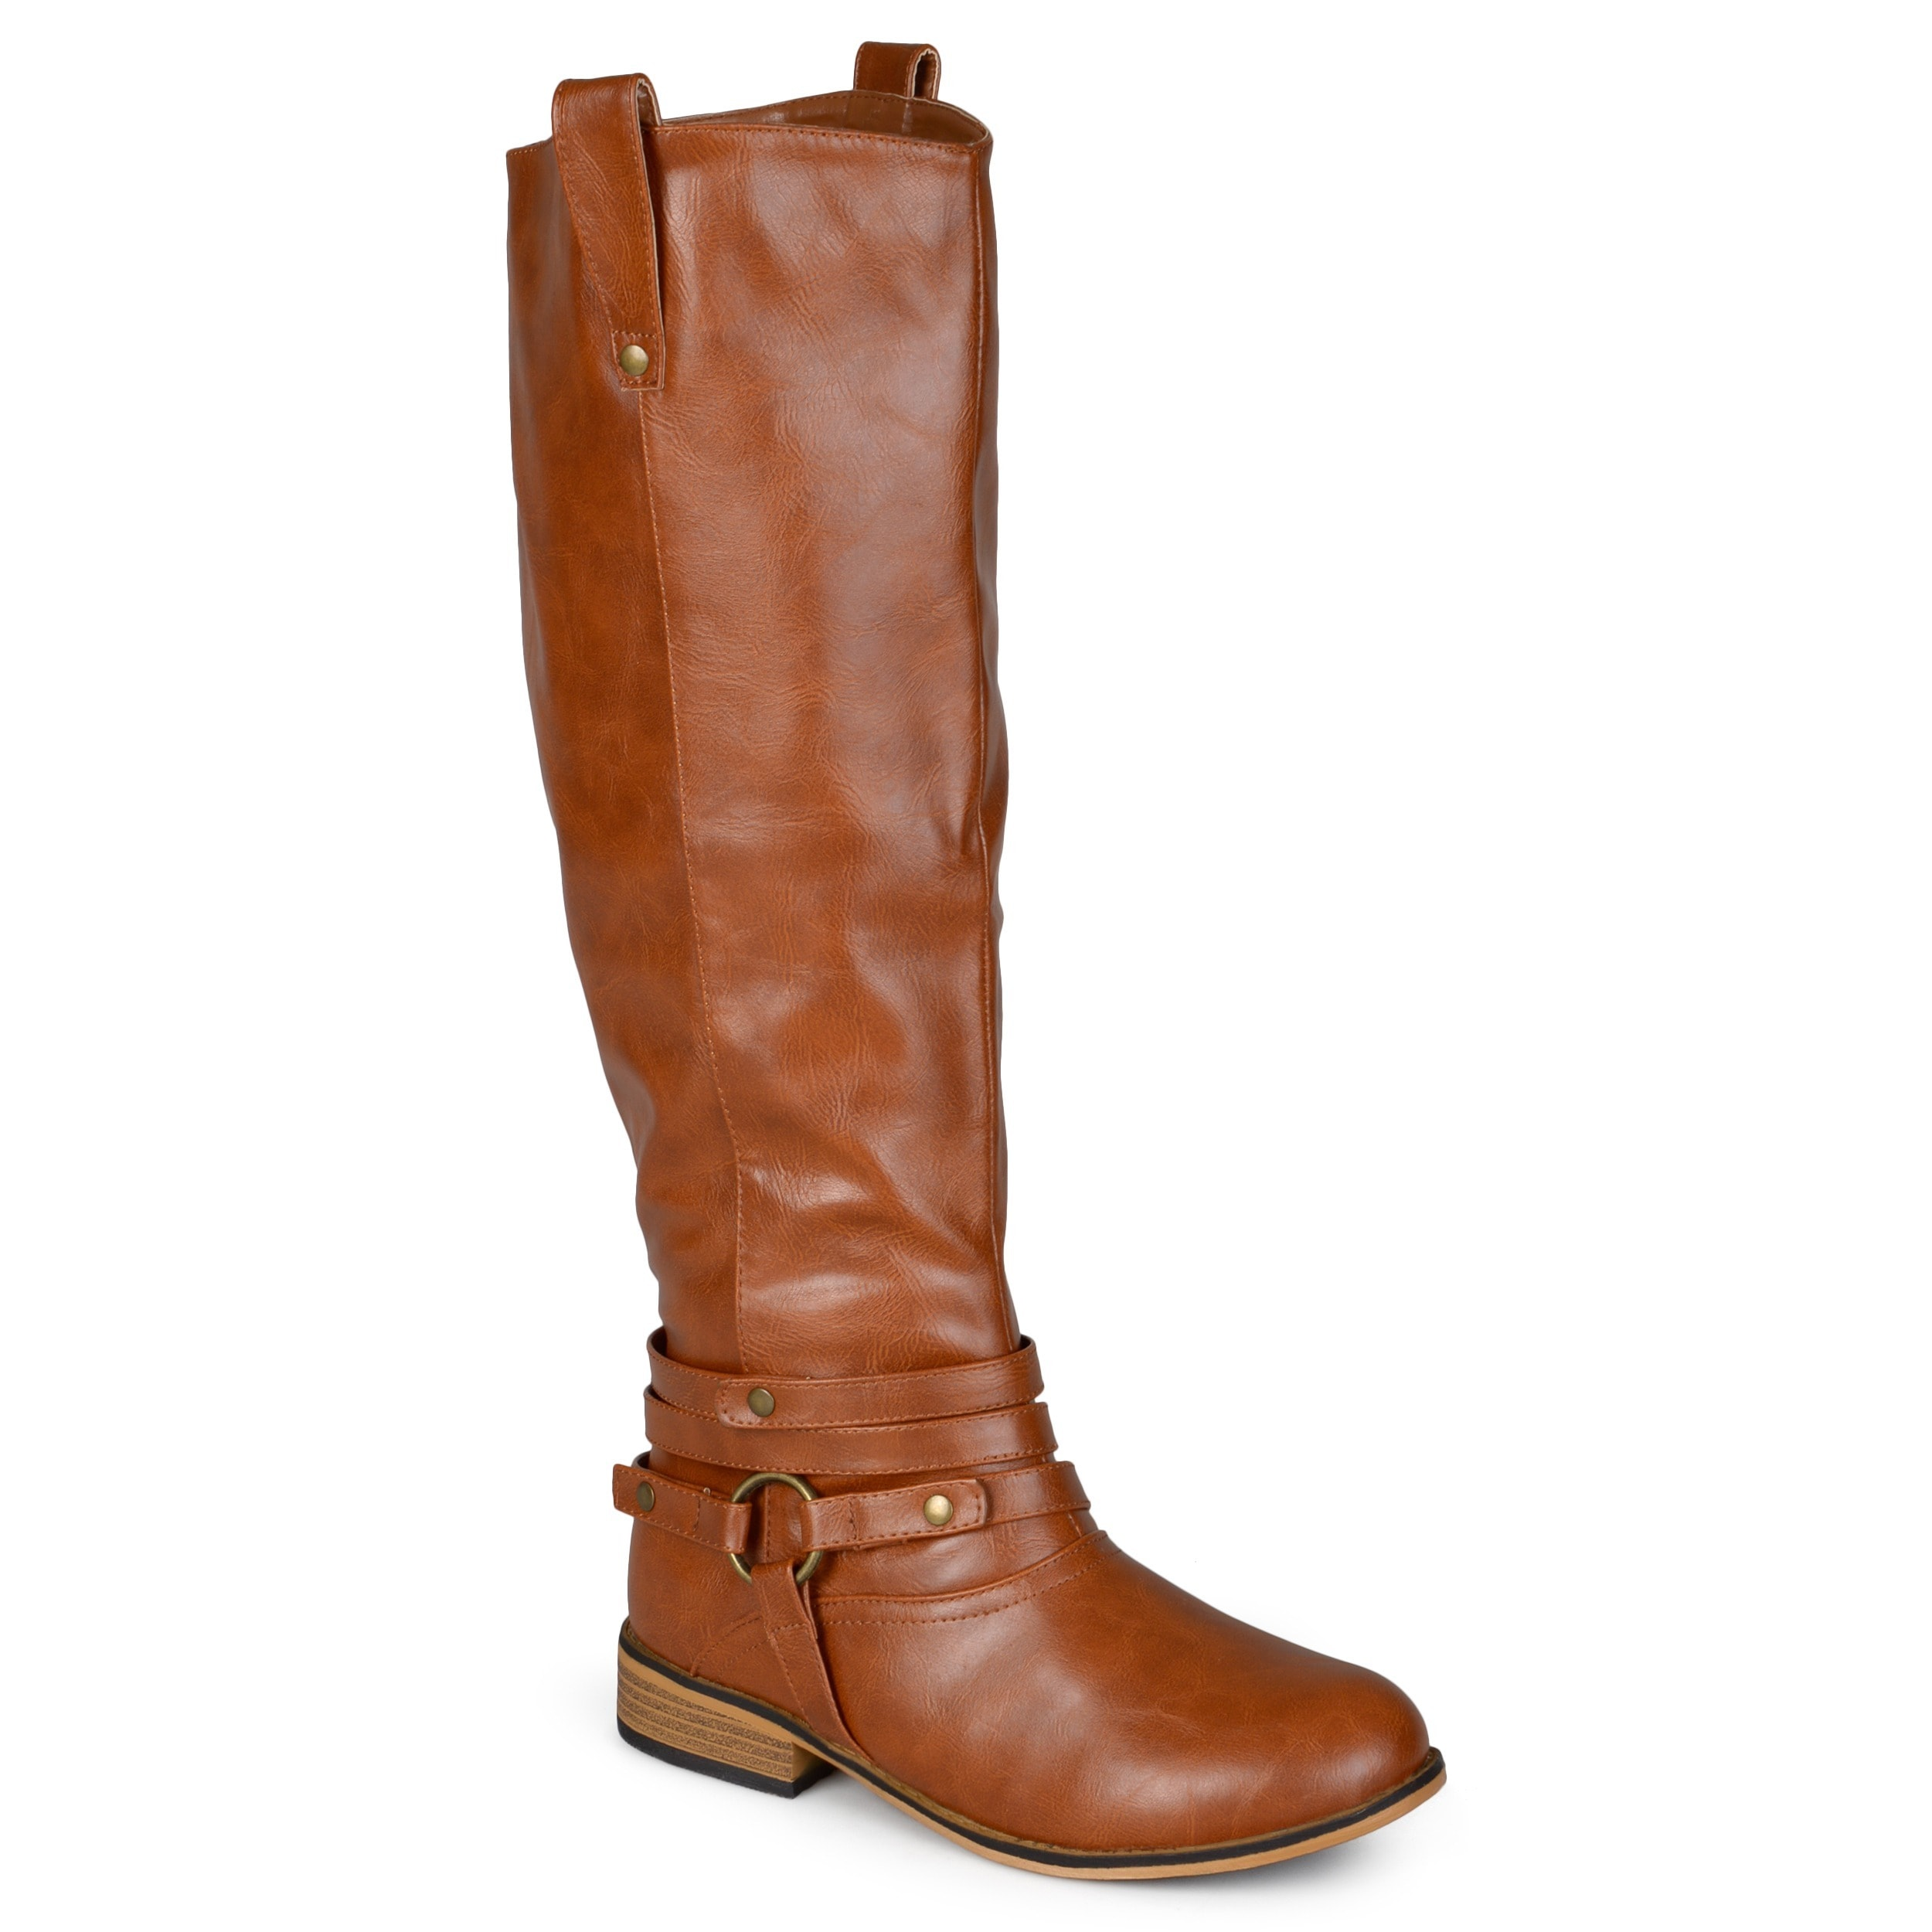 791b6bb1ce46f Journee Collection Women's 'Walla' Regular and Wide-calf Ankle-strap  Knee-high Riding Boot